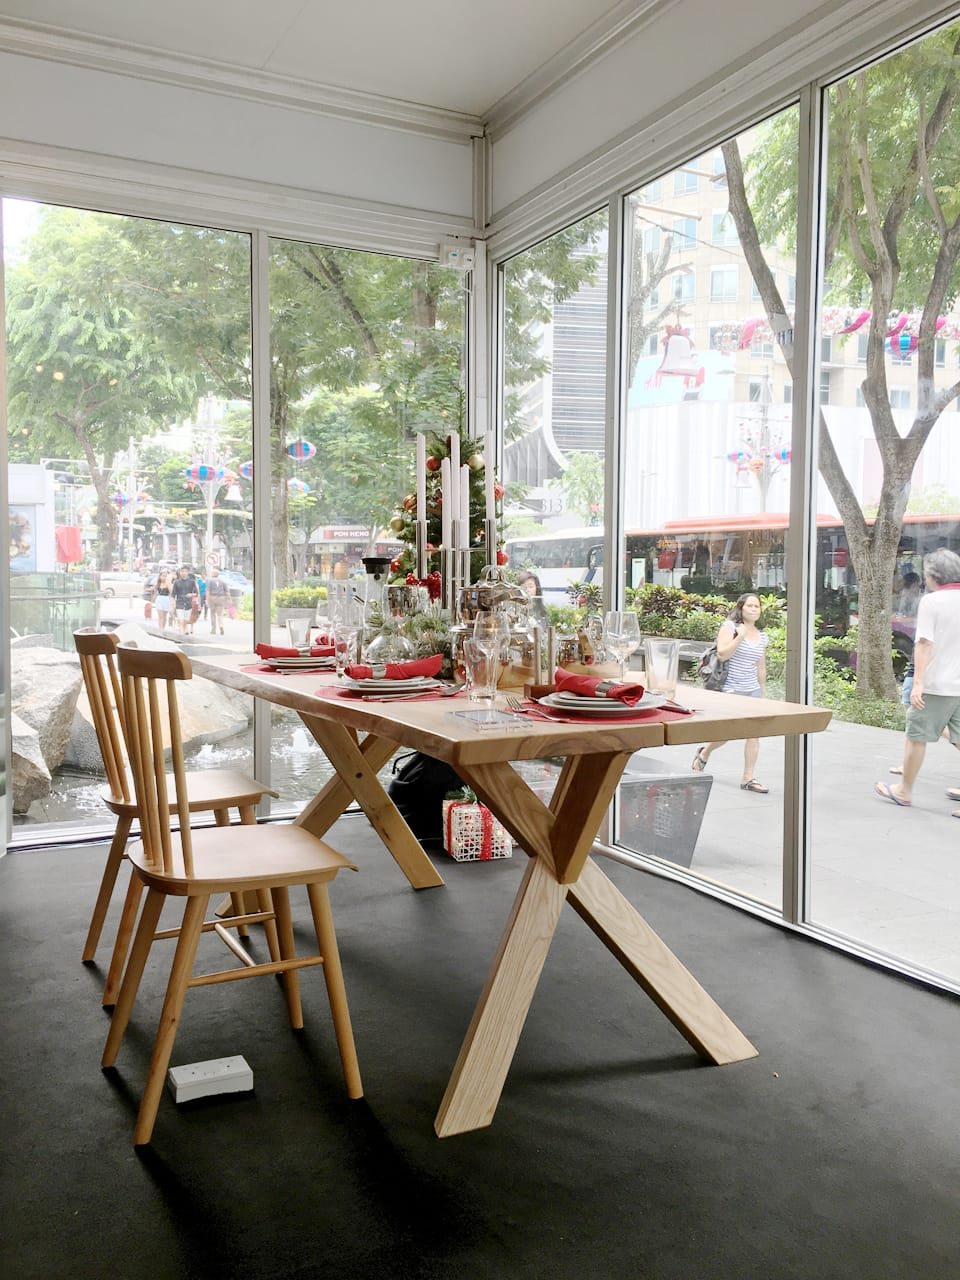 WMF Singapore – Popup Store | Product Seen: [Robin Sidechair & Dock Dining Table]